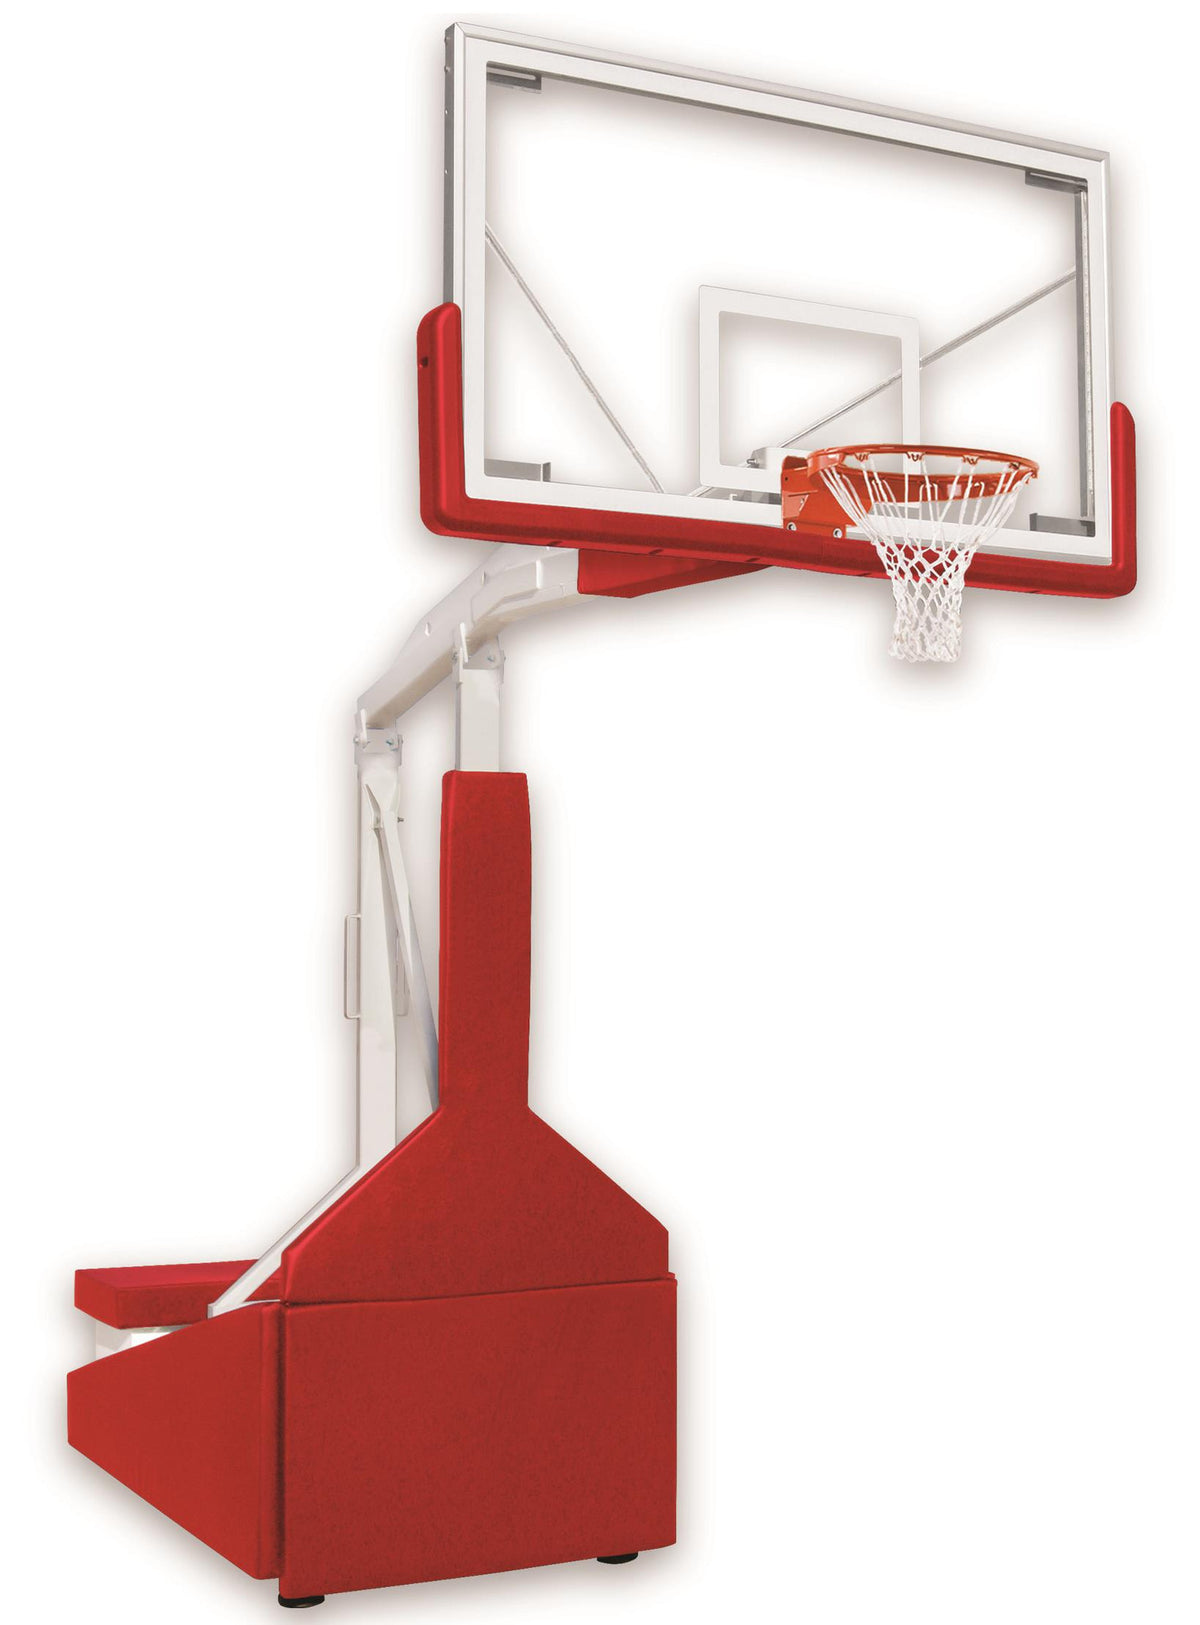 First Team Tempest Triumph Portable Adjustable Basketball Hoop 72 inch Tempered-Glass